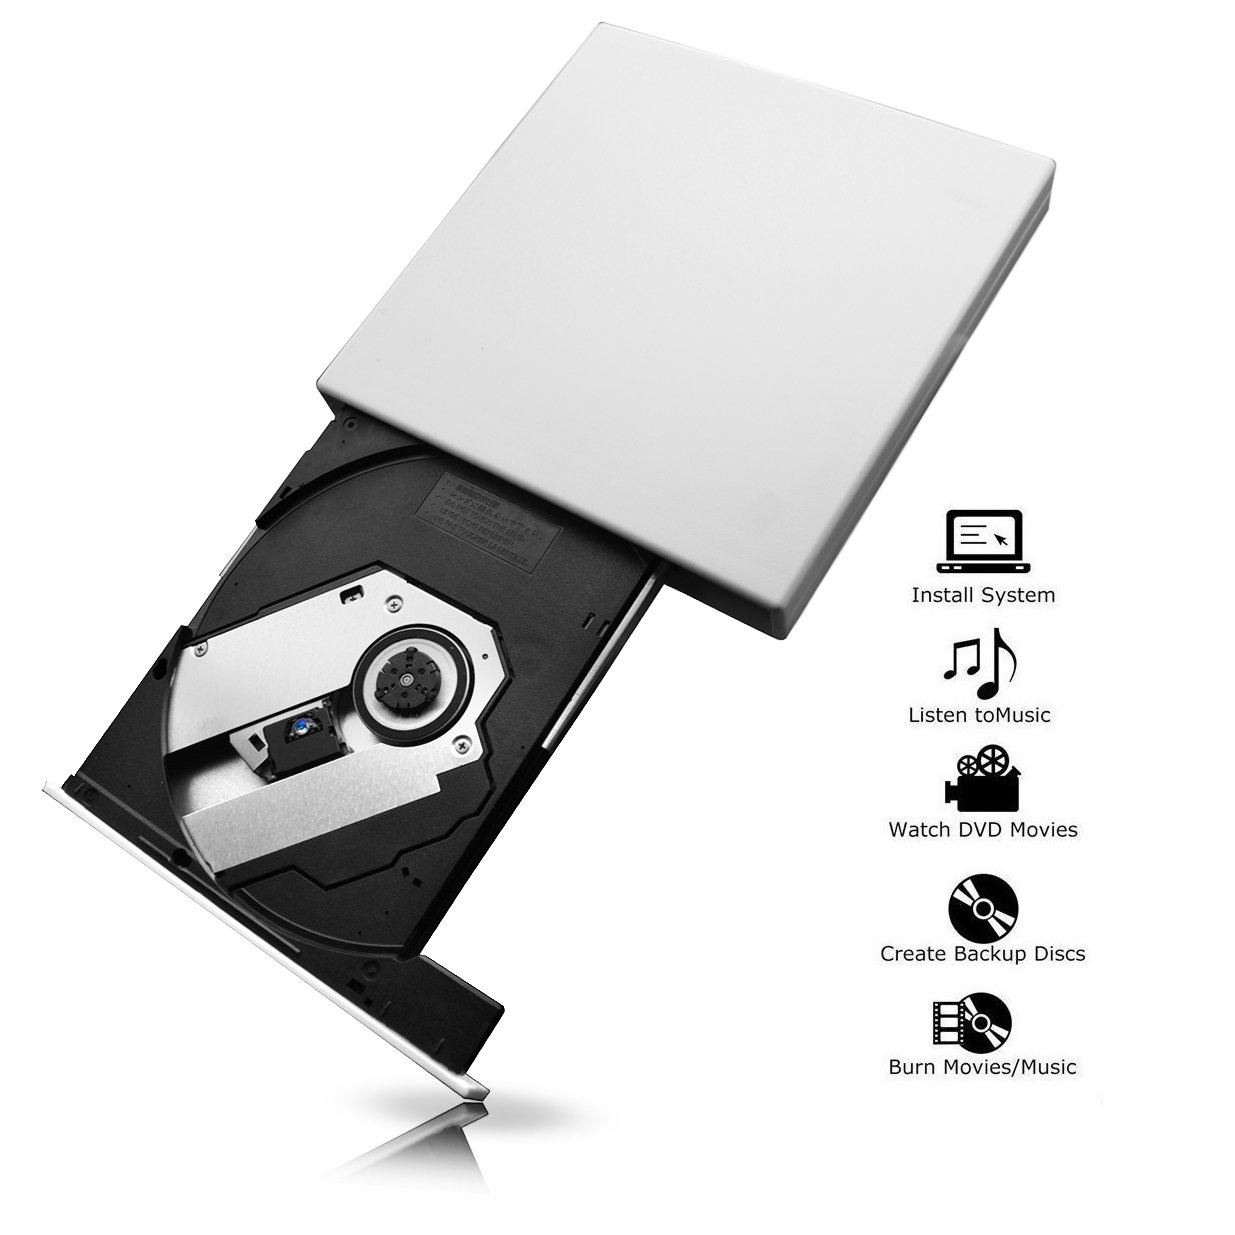 External DVD Drive USB 2.0 CD-RW Burner Drive For Mac,Windows 2000/XP/Vista/7/8/10,Ultra Notebook PC Desktop Computer,Plug and Play,No Need to Install Driver with CD Driver (white)